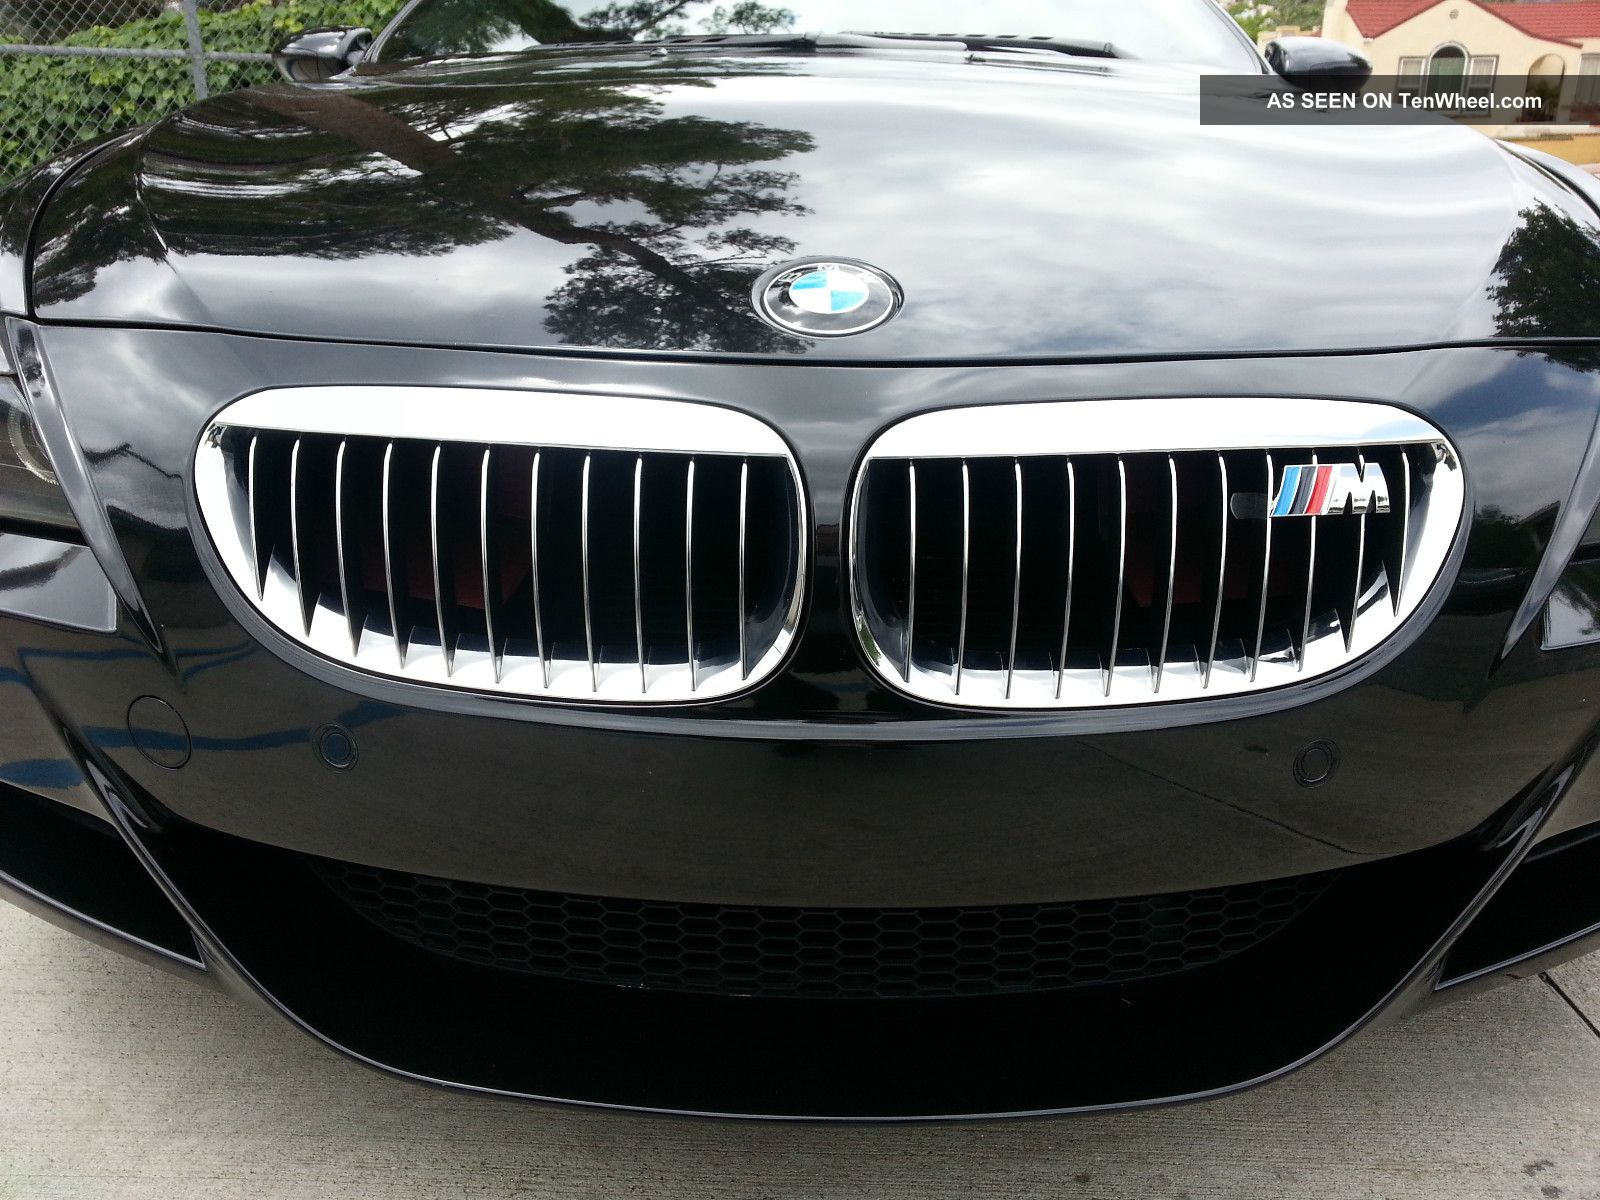 2007 Bmw M6 Coupe.  Immaculate.  Carbon.  Many Upgrades.  Looks And Sound.  A+++ M6 photo